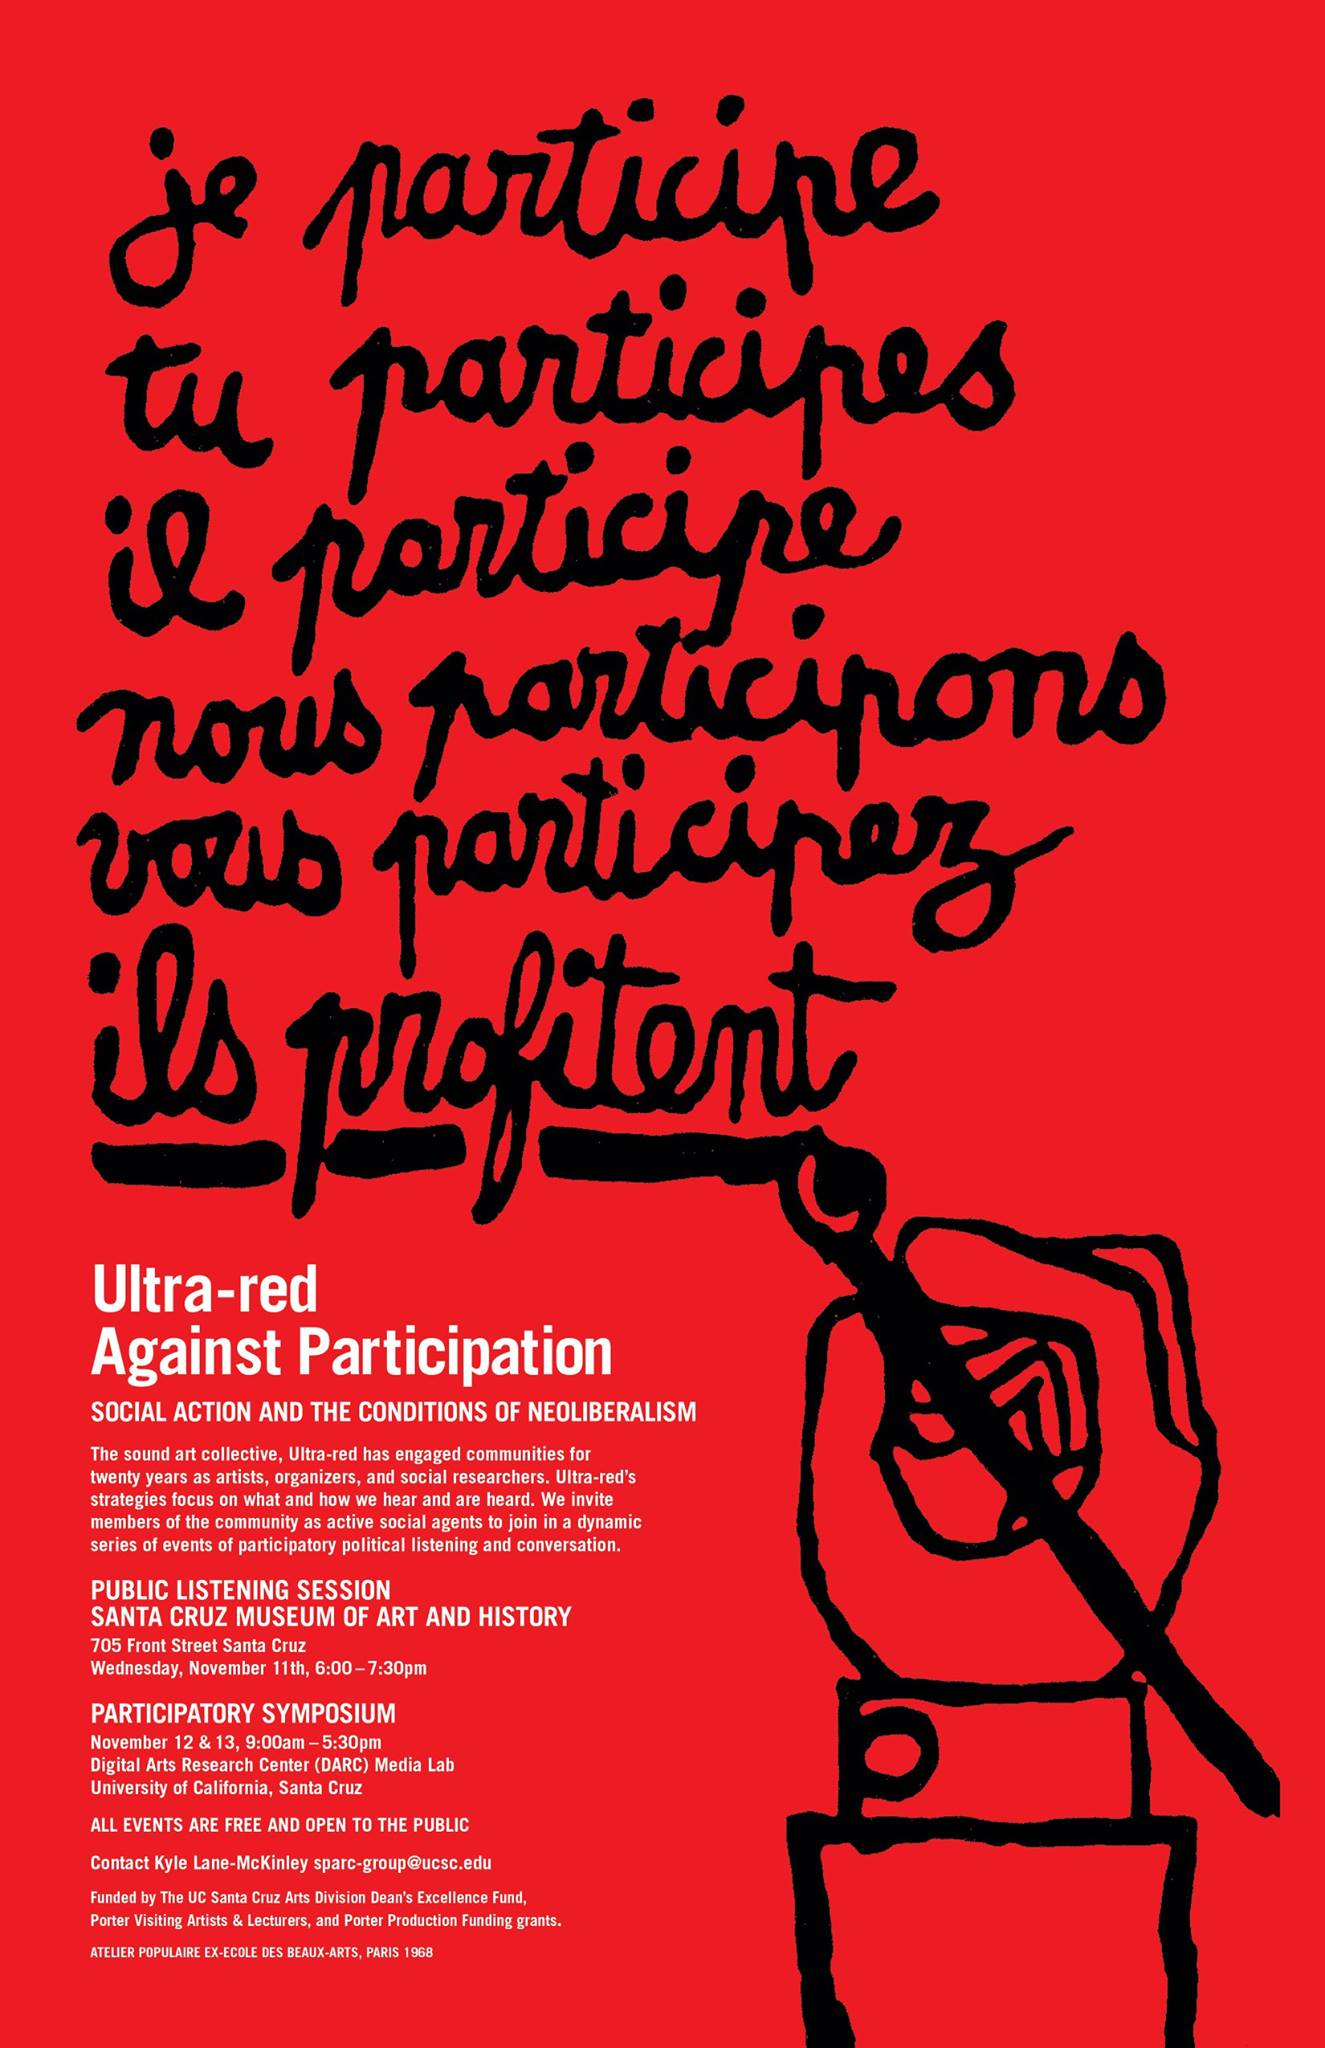 Robert Sember at Against Participation: Social Action and the Conditions of Neoliberalism